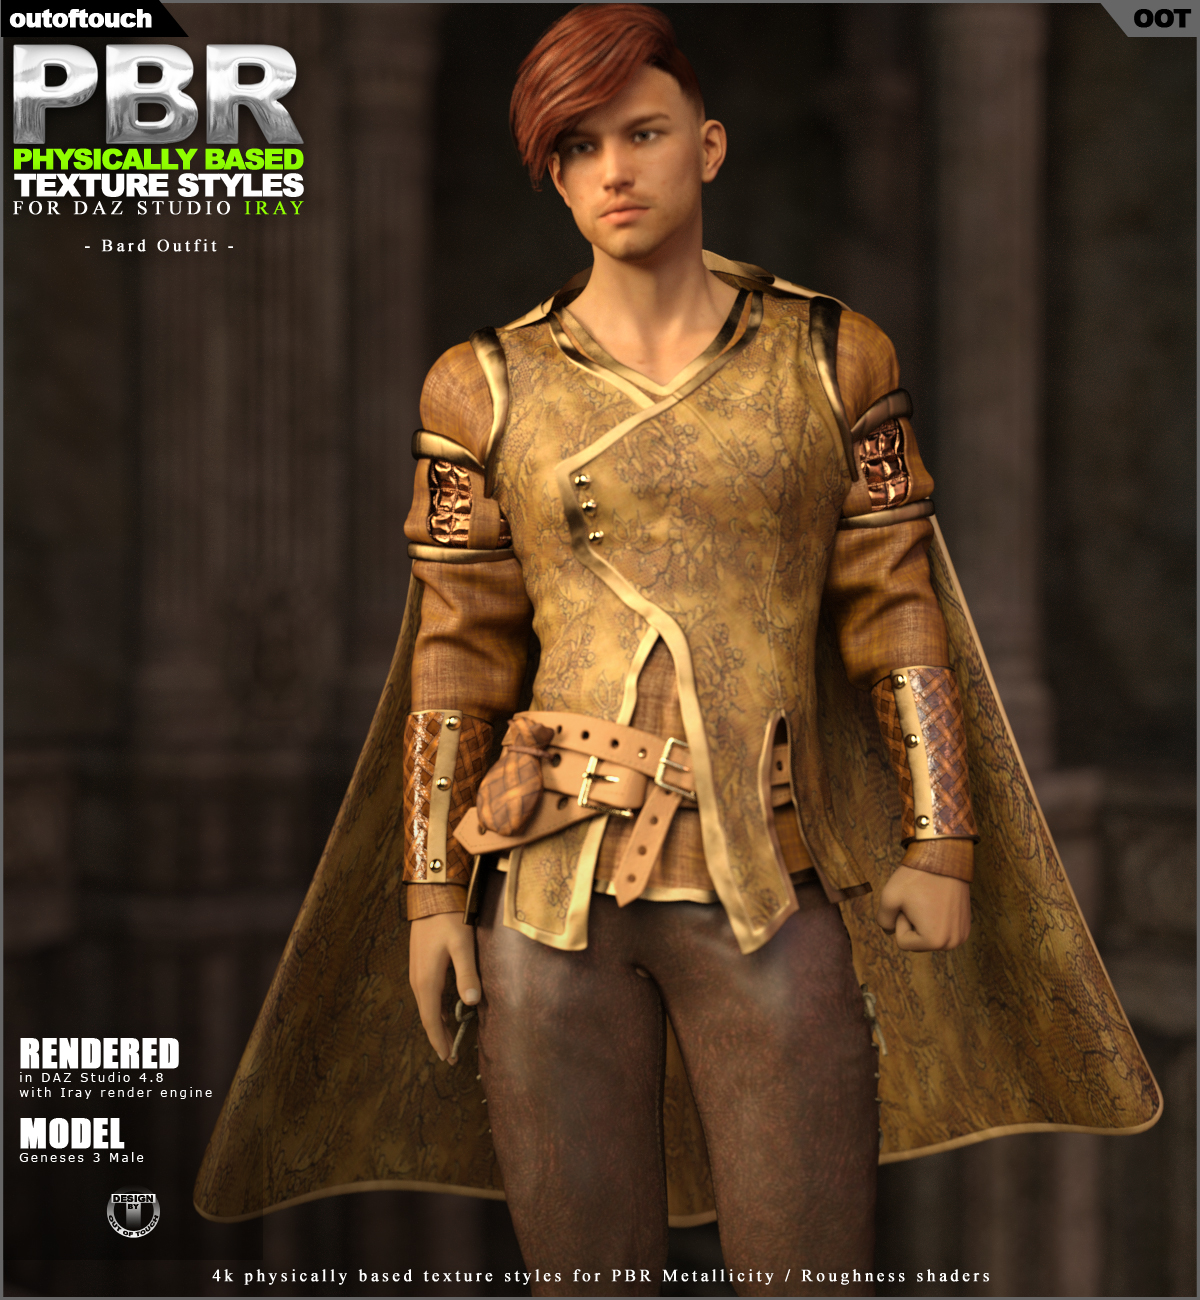 OOT PBR Texture Styles for Bard Outfit